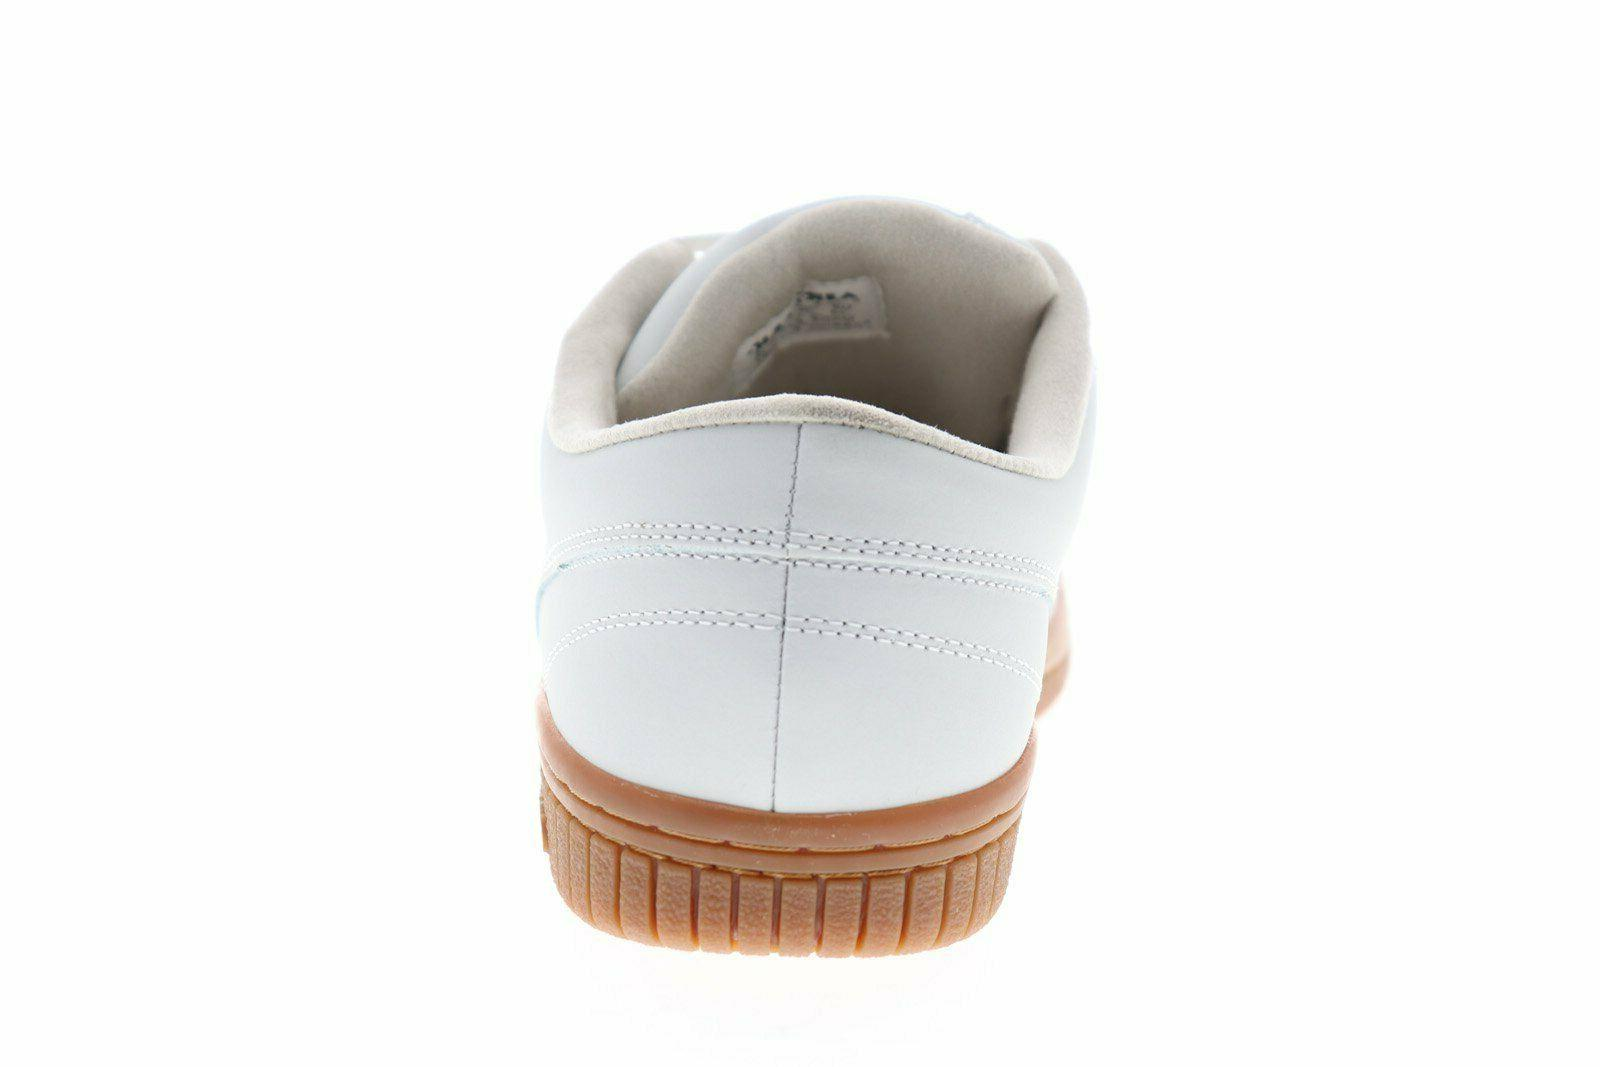 Airwalk The One Men's 12 Shoes Wheat Leather New NIB